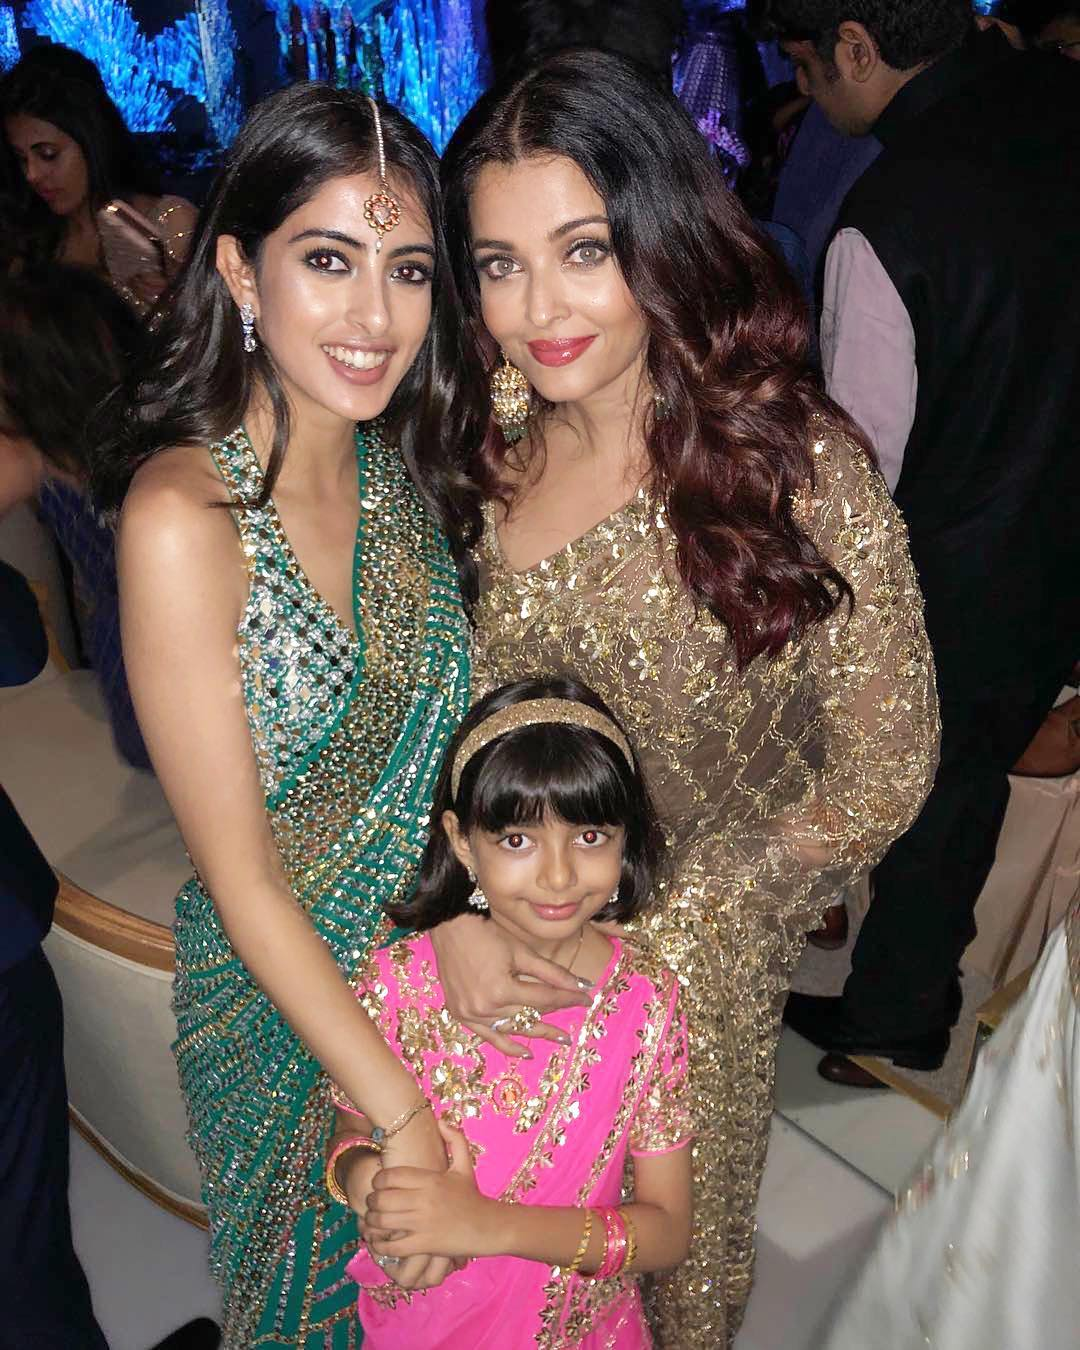 Aradhya Bachchan and ashwarya  ambani engagement star kids vs parent